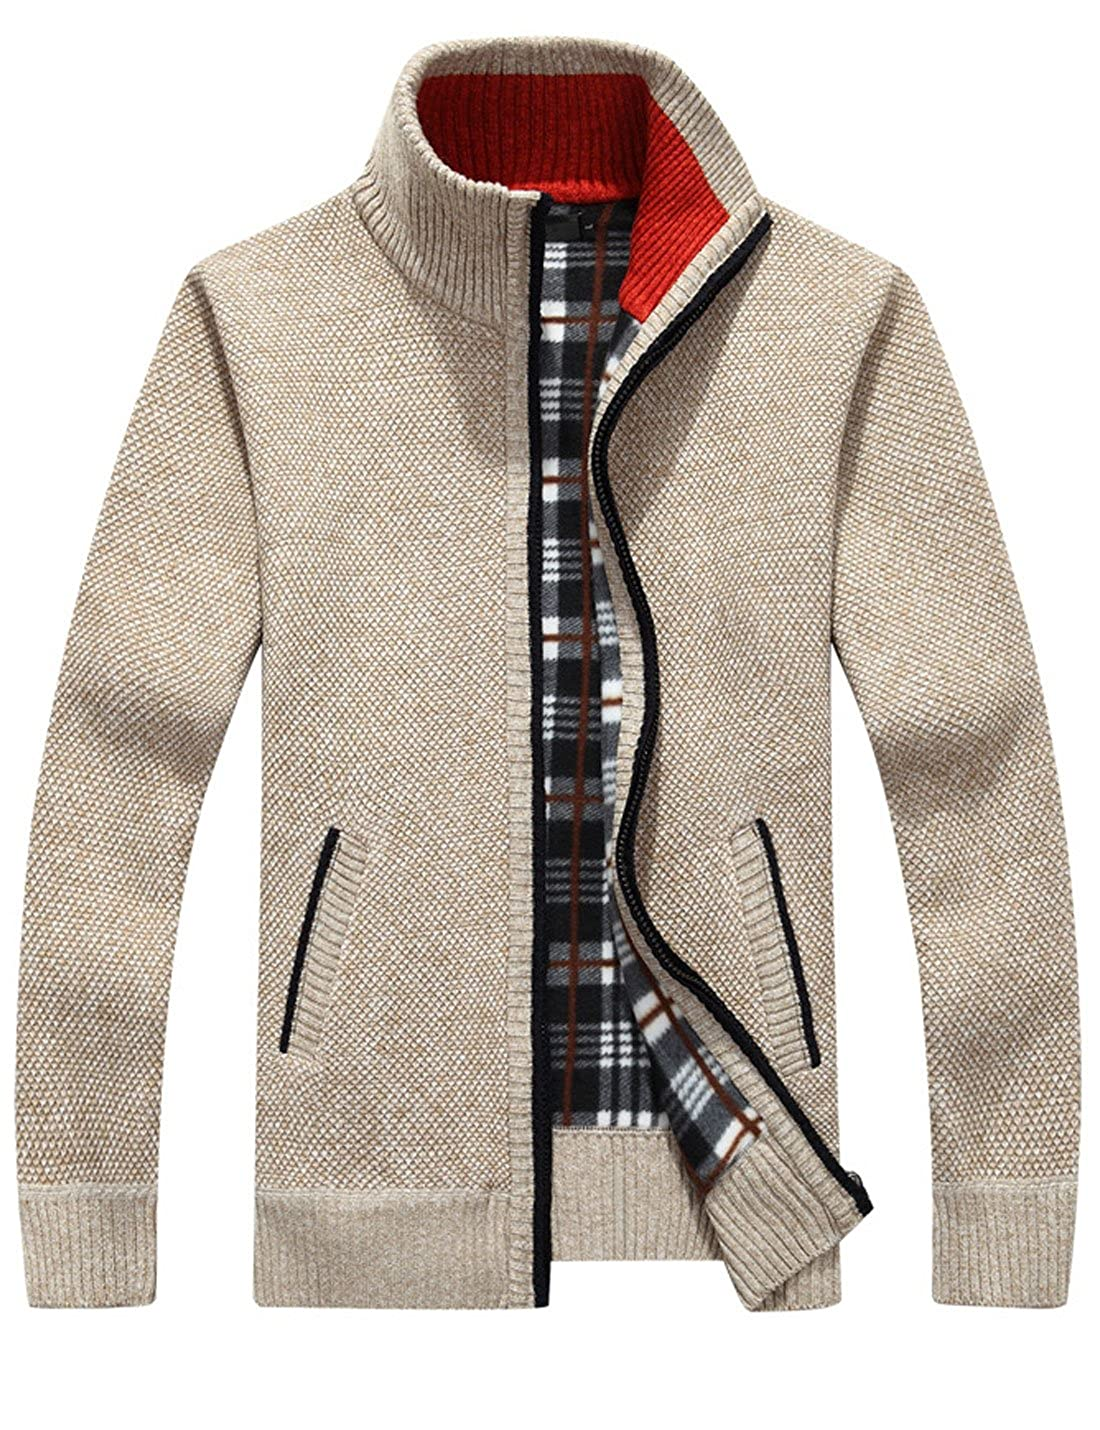 95e8bfbd9e0 Yeokou Men s Casual Slim Full Zip Thick Knitted Cardigan Sweaters with  Pockets at Amazon Men s Clothing store